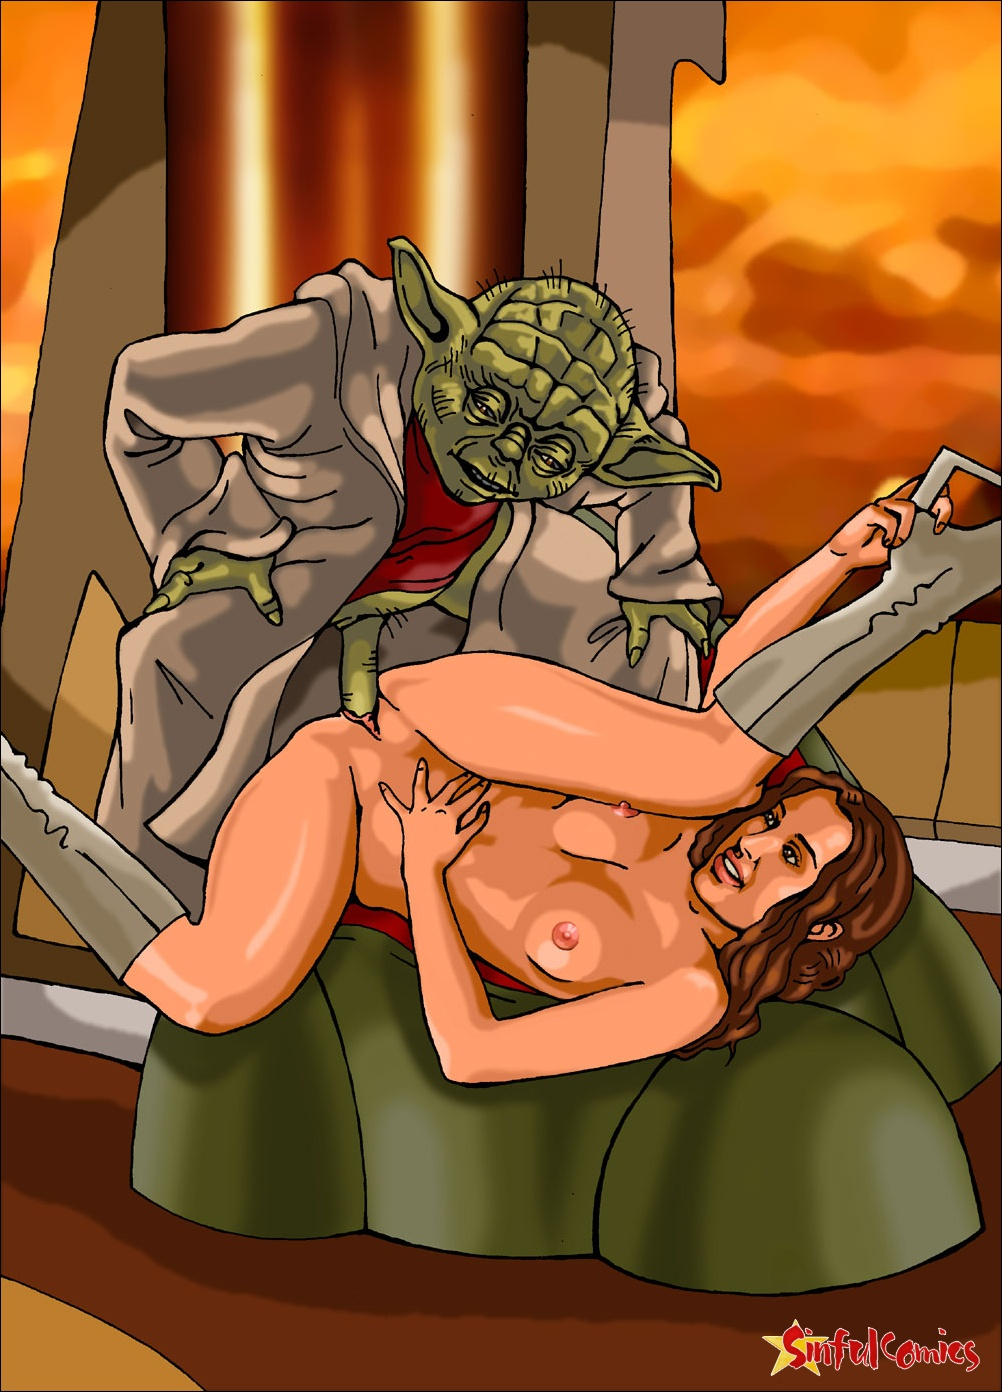 Star wars sex pic sexy tubes